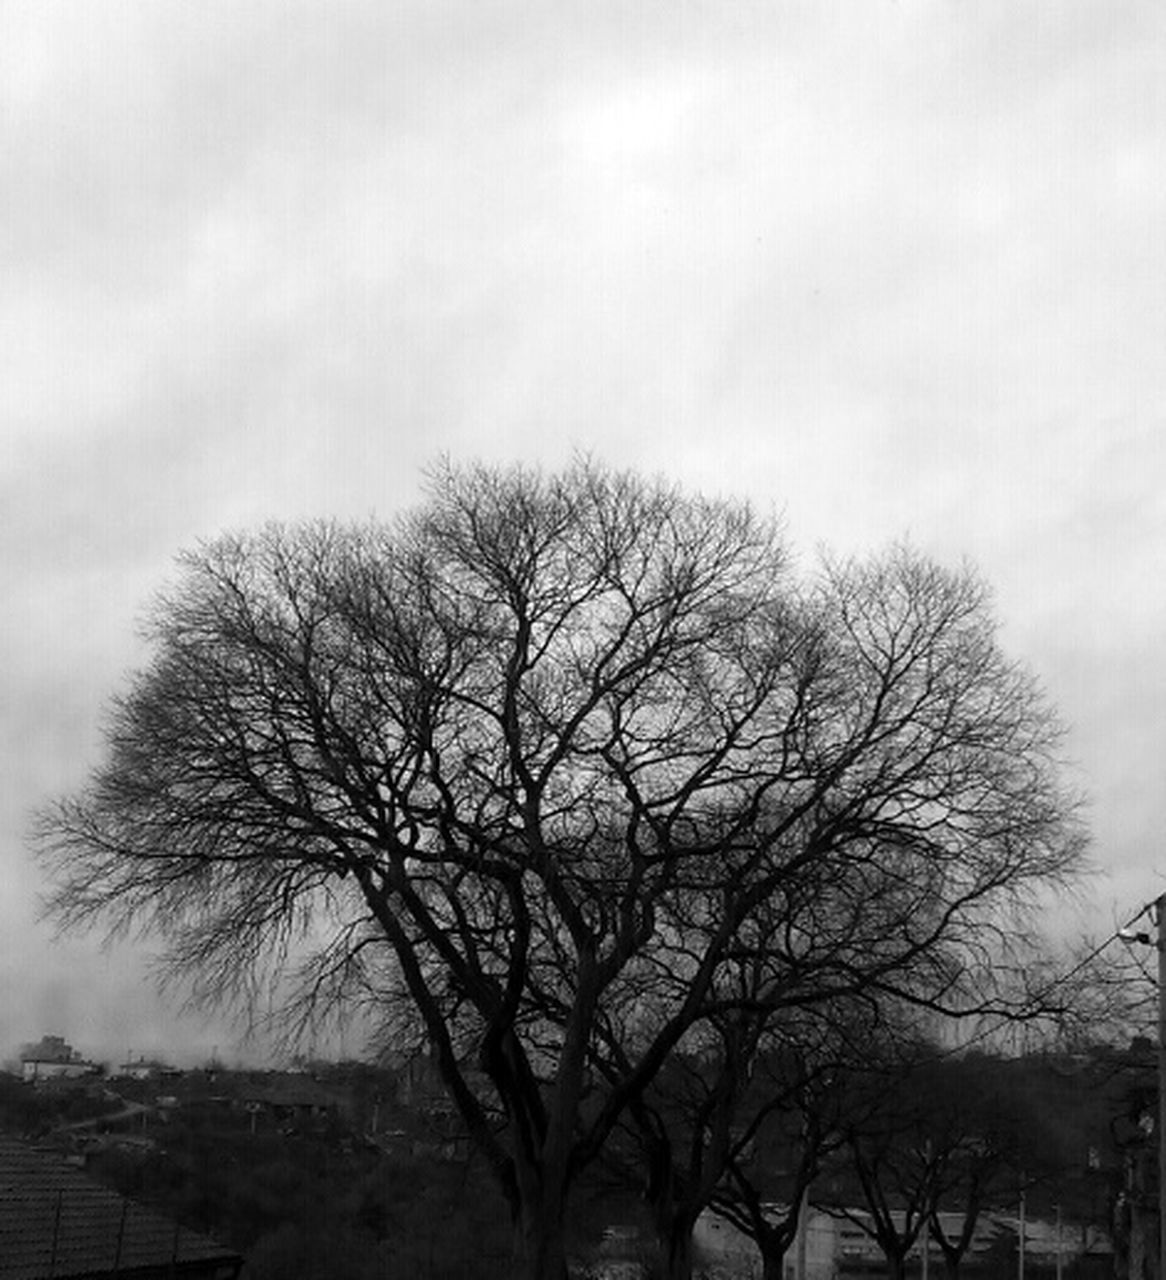 bare tree, tree, low angle view, sky, branch, outdoors, beauty in nature, nature, day, tranquility, no people, scenics